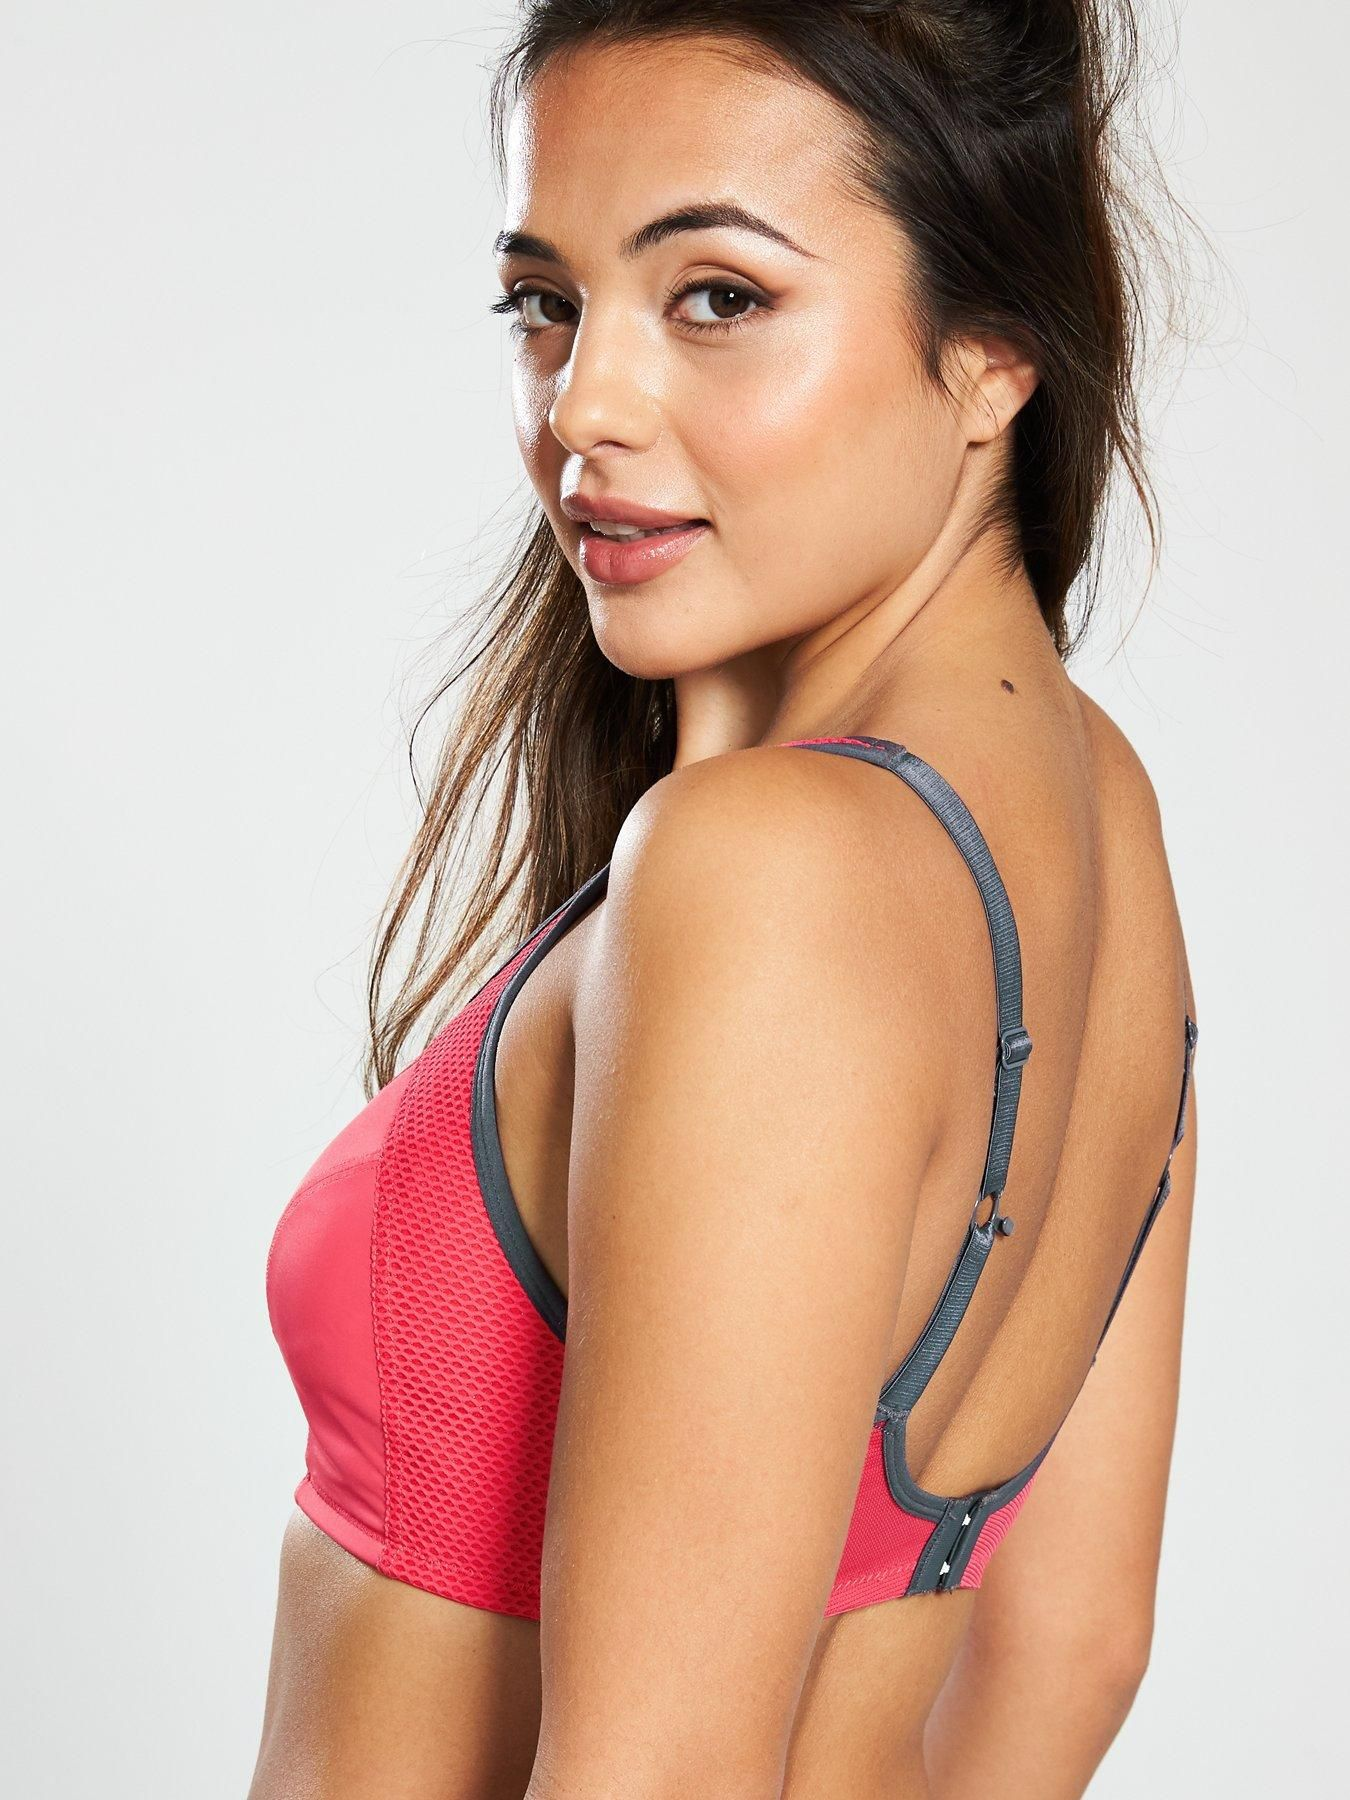 Pour Moi Engergy Non Wired Full Cup Sports Bra - Coral, Coral, Size 40, Women - Coral - 40 | Bra, Women, Sports bra sizing